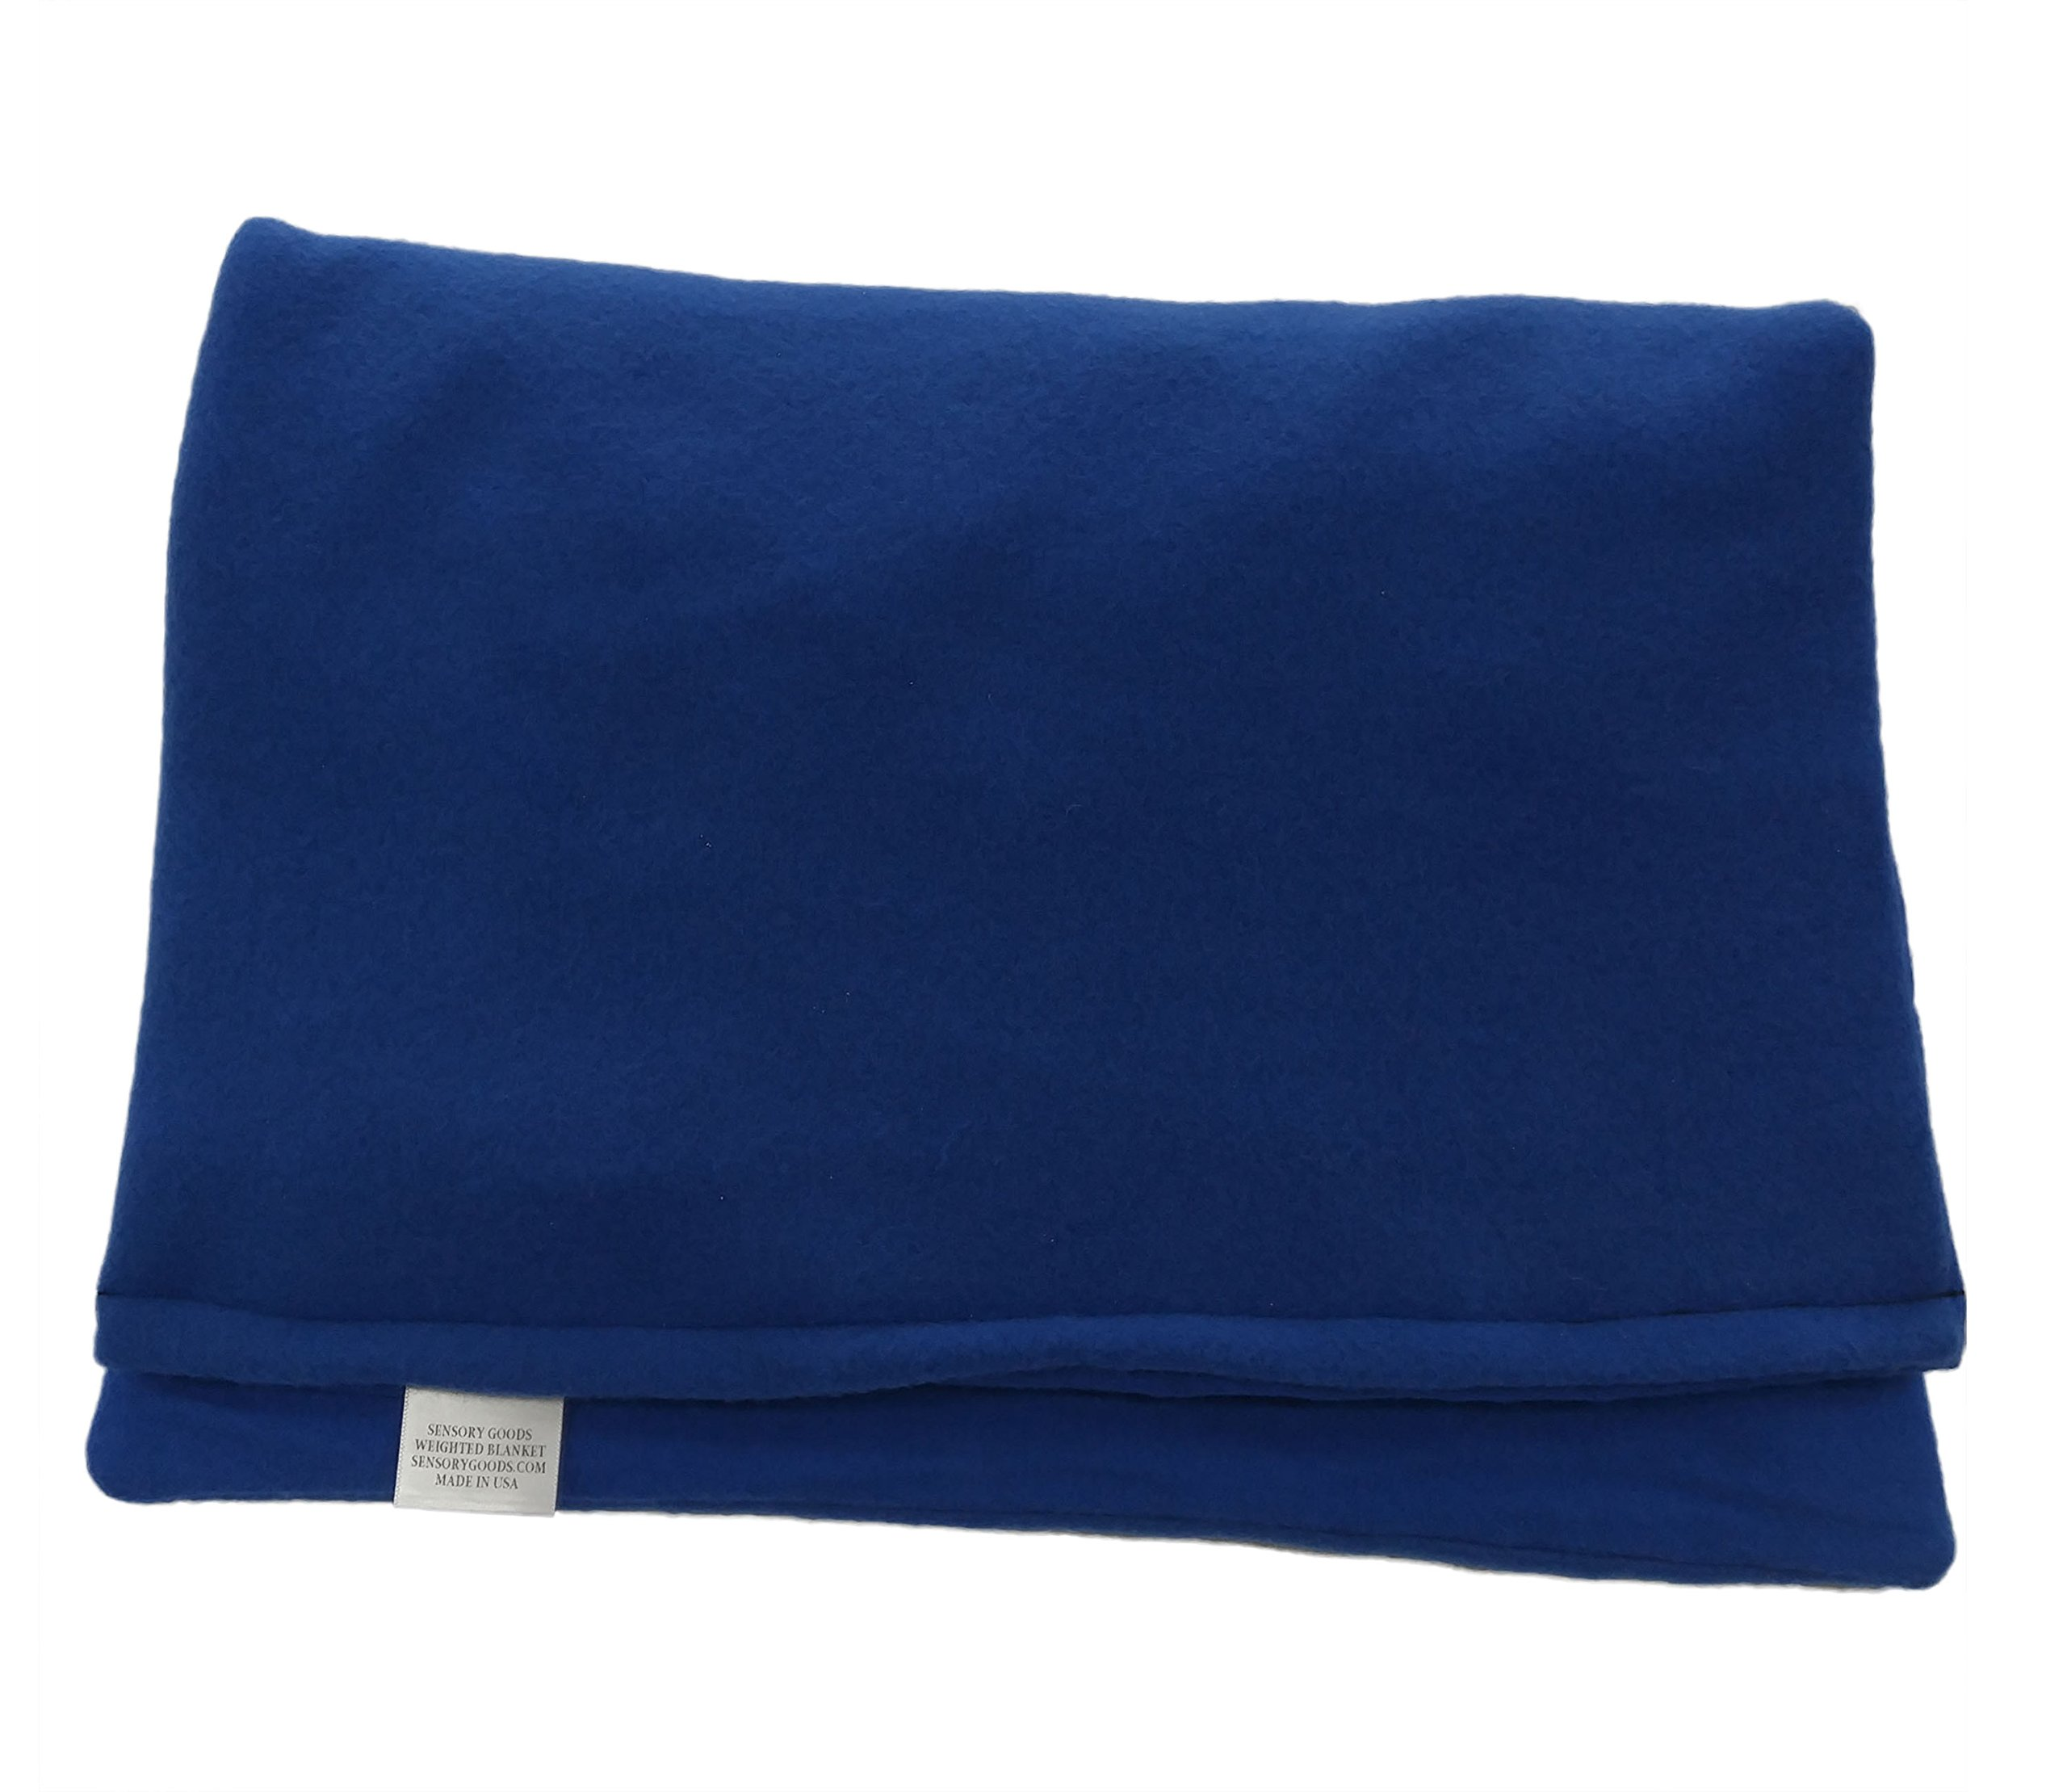 Sensory Goods Large Weighted Lap Pad - 7lb - 17'' x 23'' (Blue)